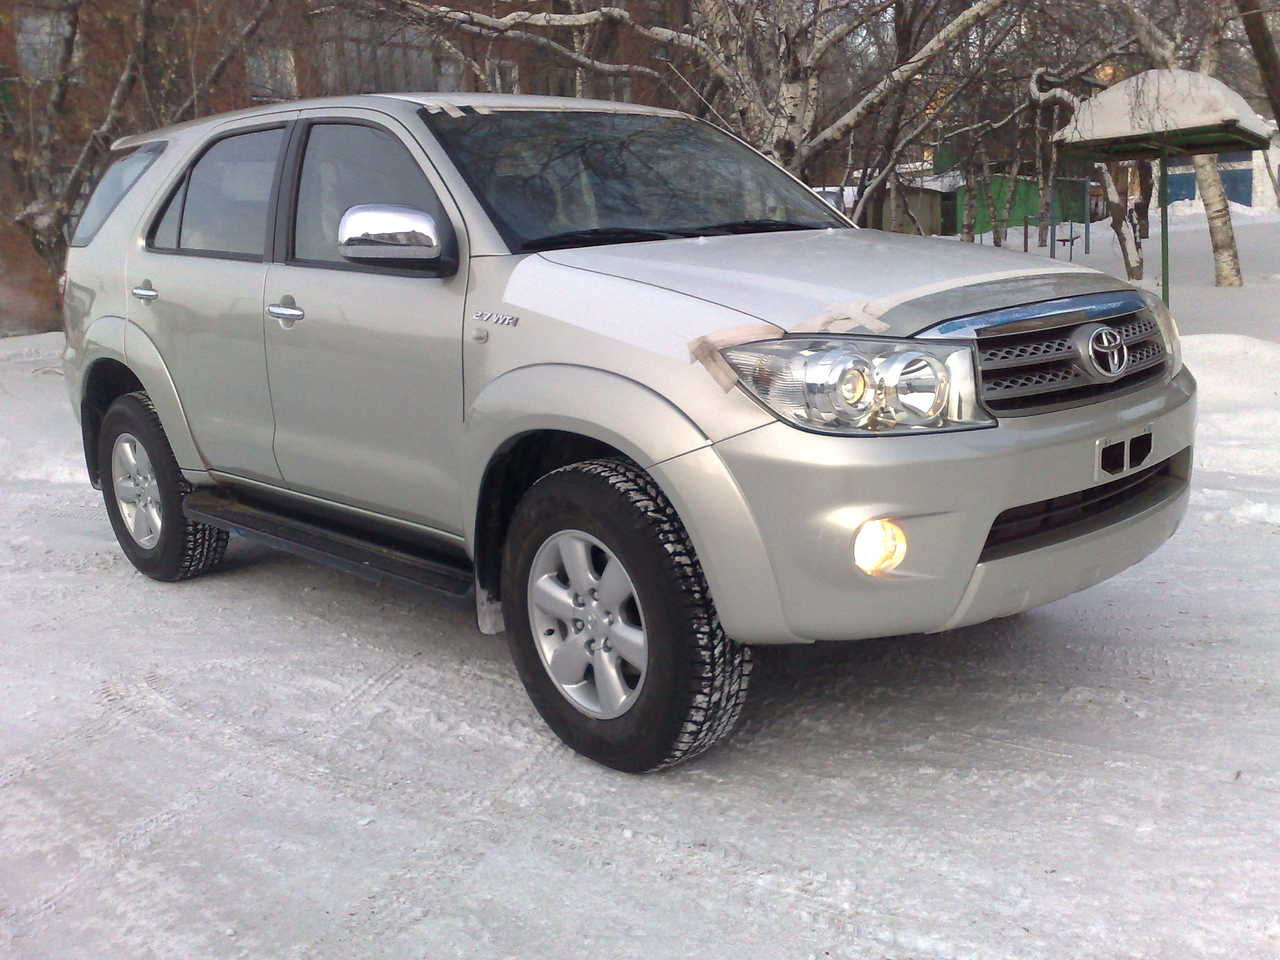 2010 Toyota Fortuner Pictures 2 7l Gasoline Automatic For Sale